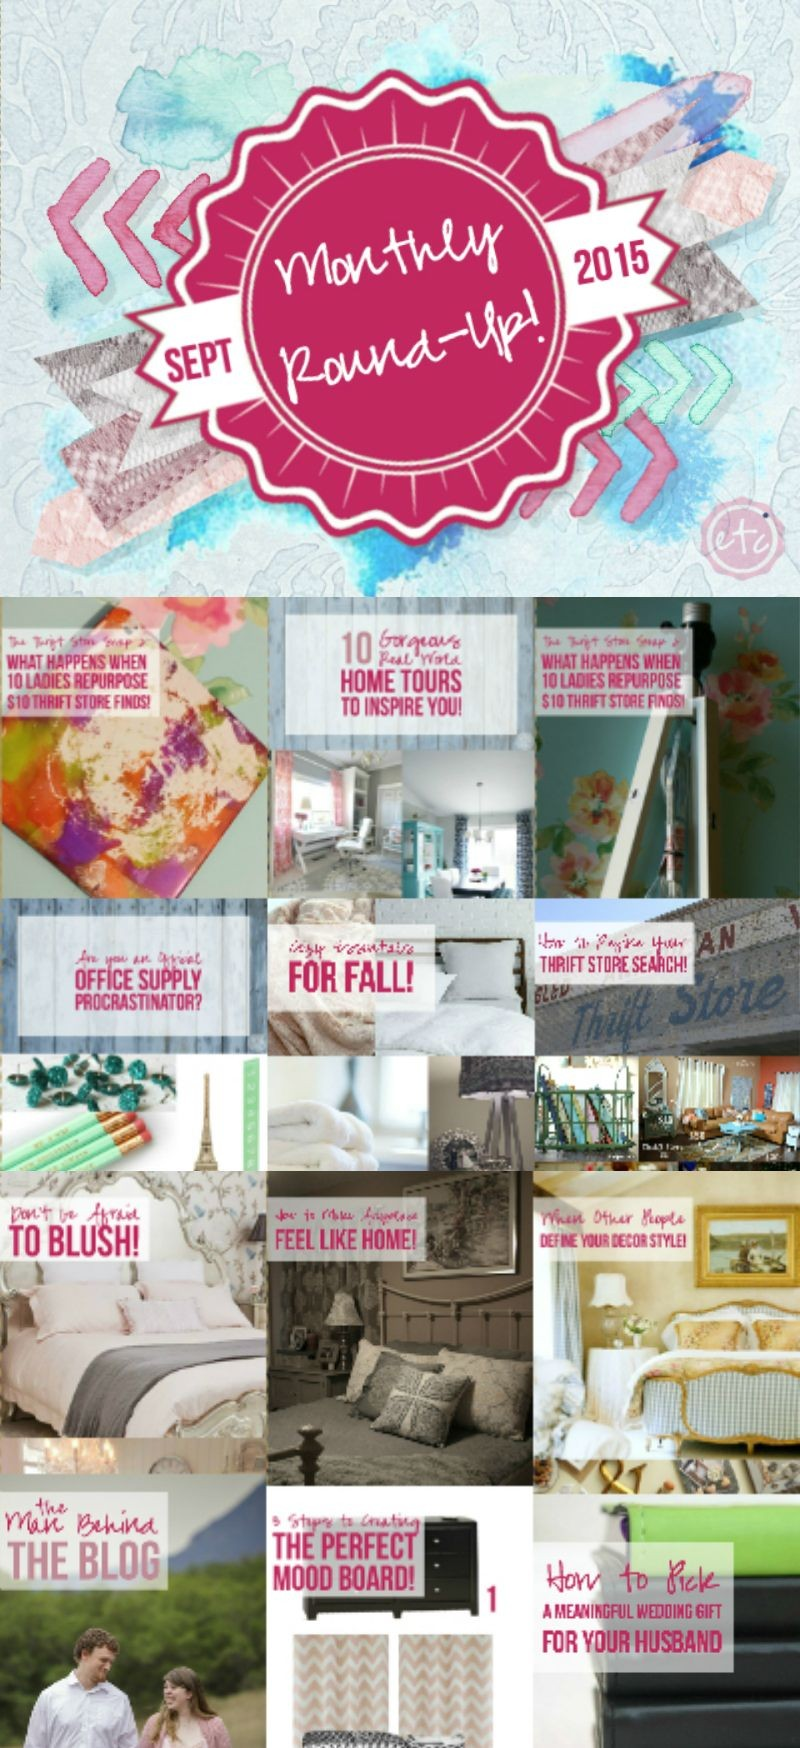 September 15 Monthly Round up with Happily Ever After, Etc.